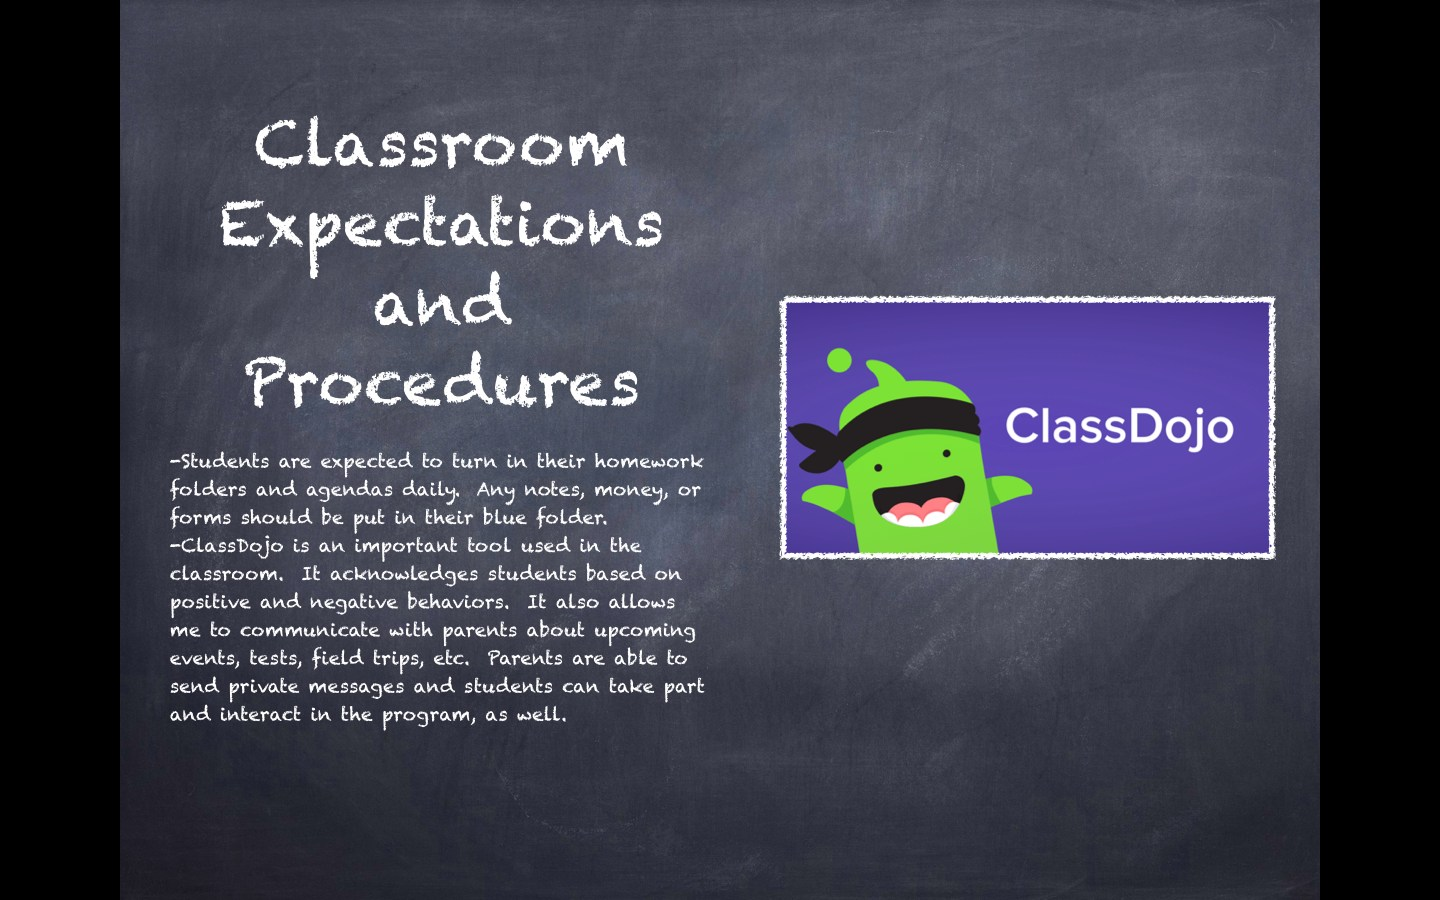 Classroom Expectations and Procedures: Students are expected to turn in their homework folders and agendas daily.  Any notes, money, or forms should be put in their blue folder. -ClassDojo is an important tool used in the classroom.  It acknowledges students based on positive and negative behaviors.  It also allows me to communicate with parents about upcoming events, tests, field trips, etc.  Parents are able to send private messages and students can take part and interact in the program, as well.